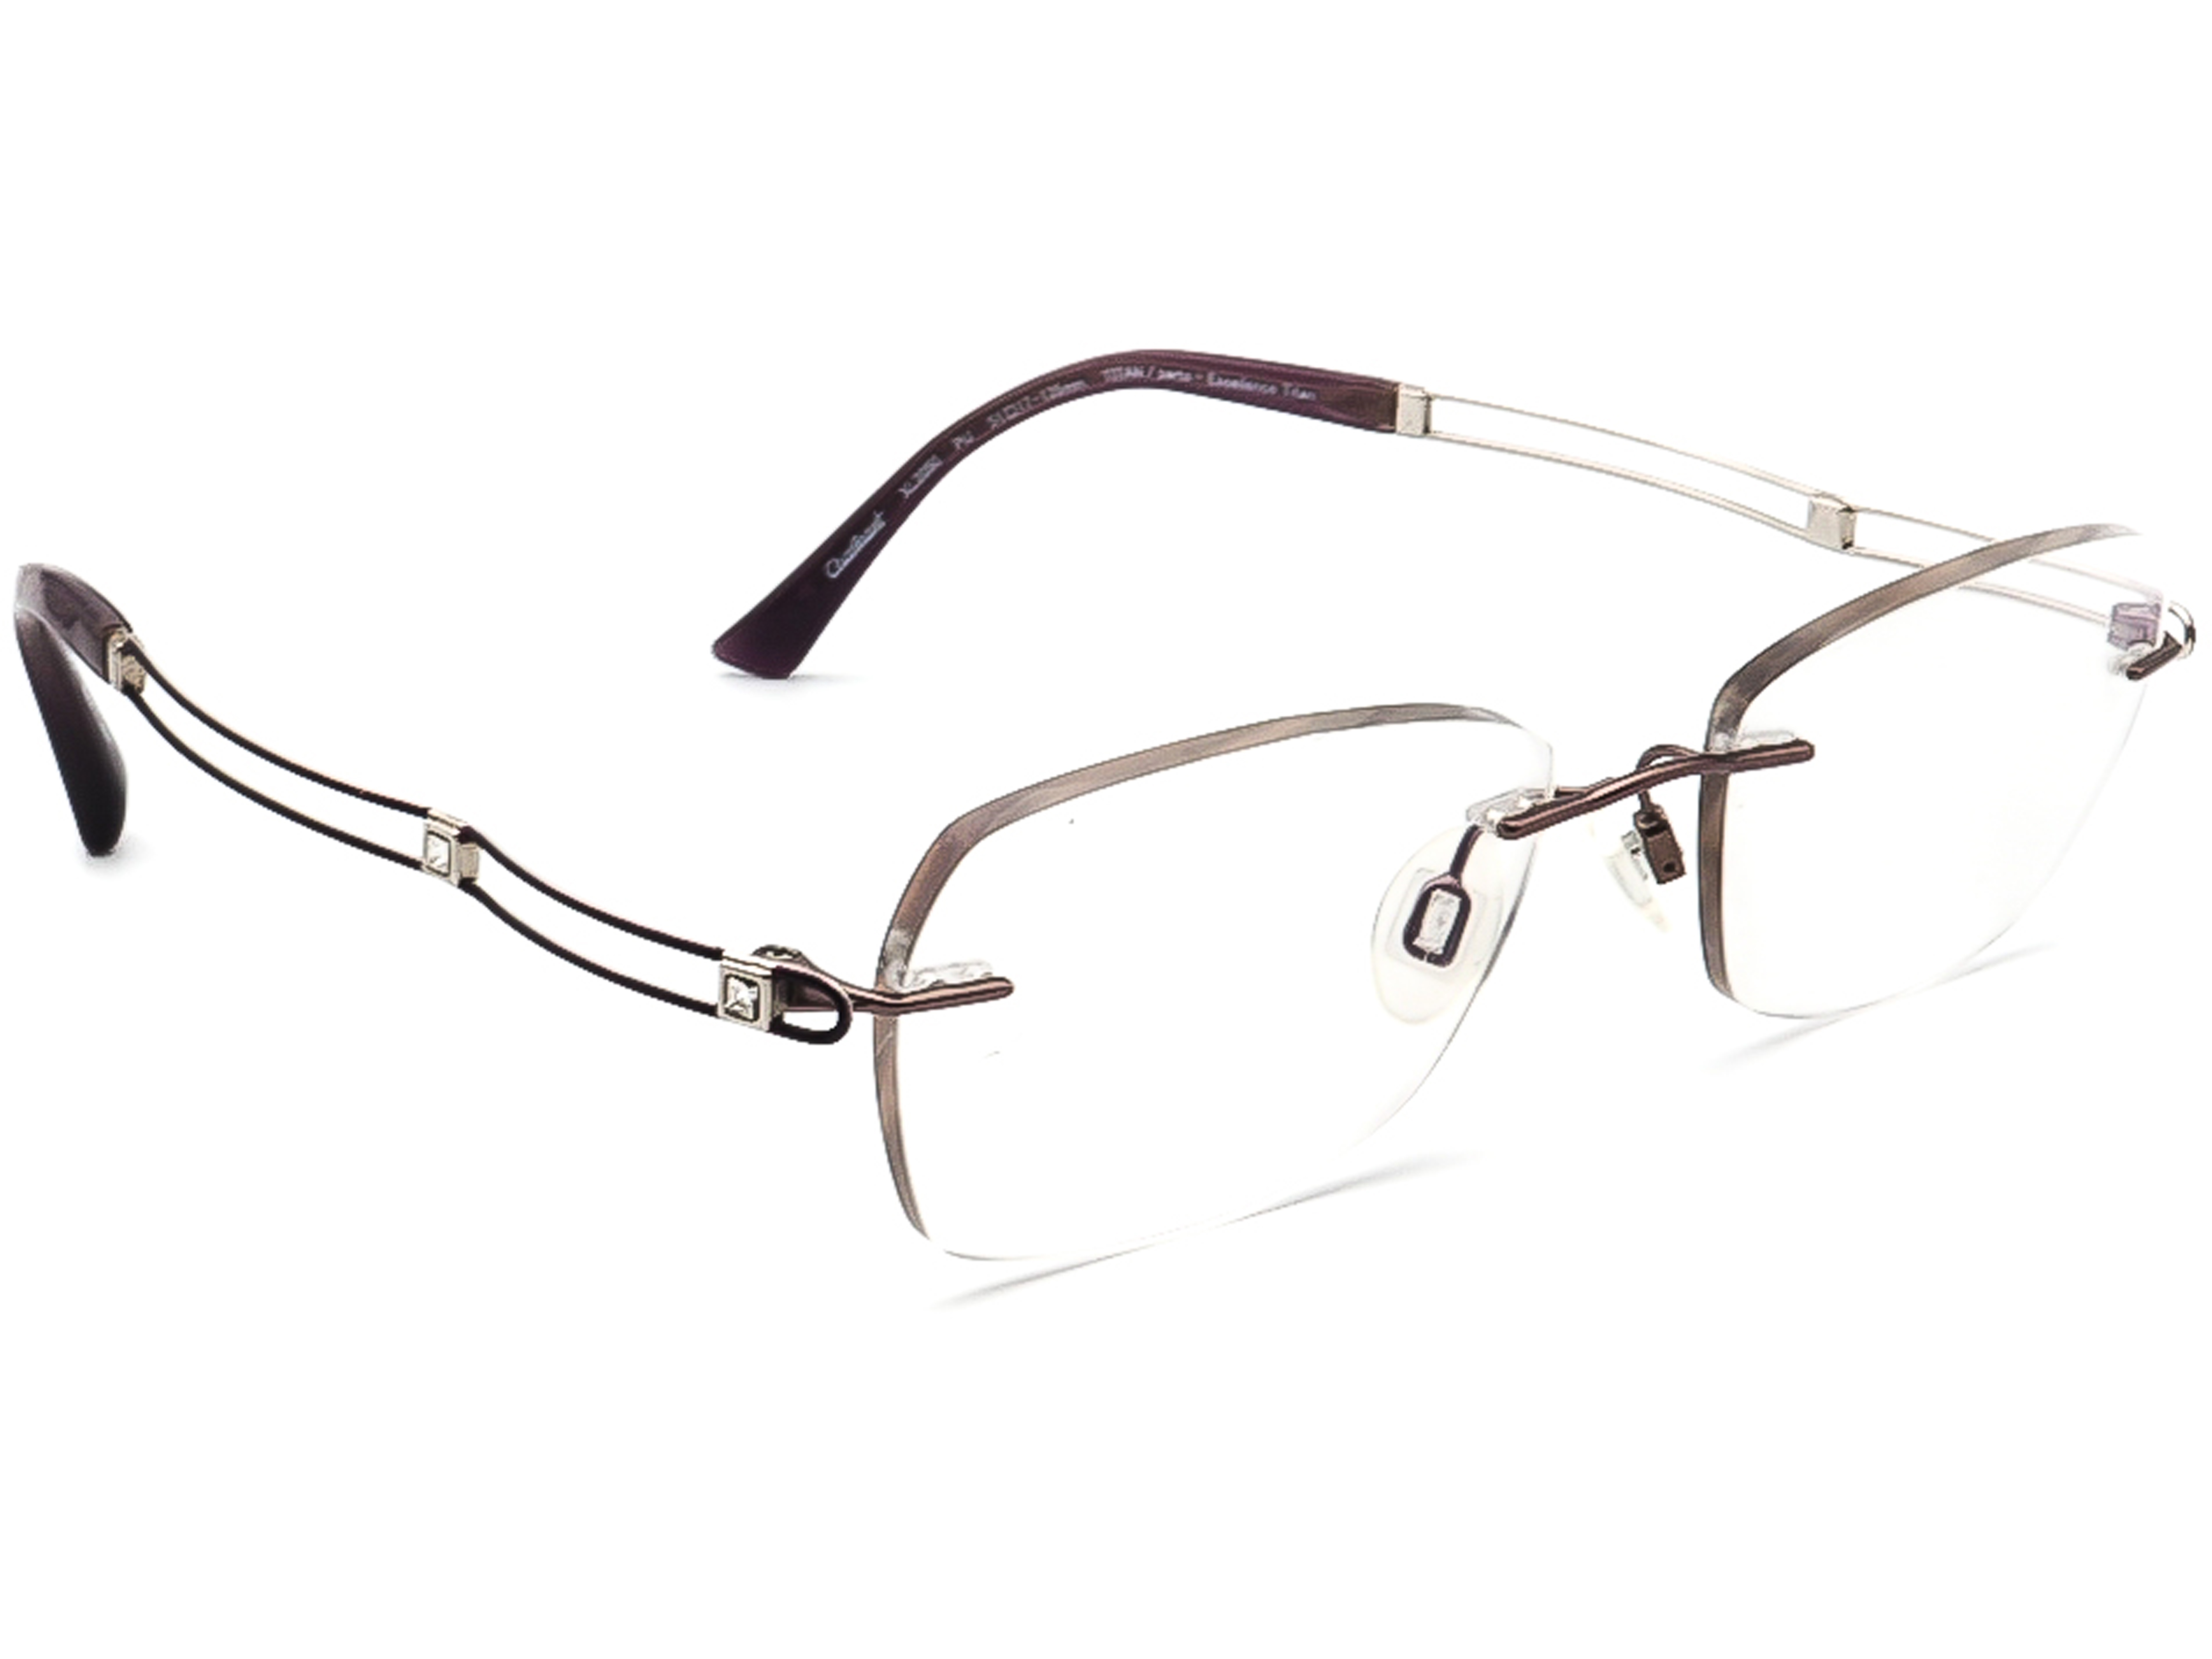 Charmant XL2050 PU Titan Line Art Eyeglasses